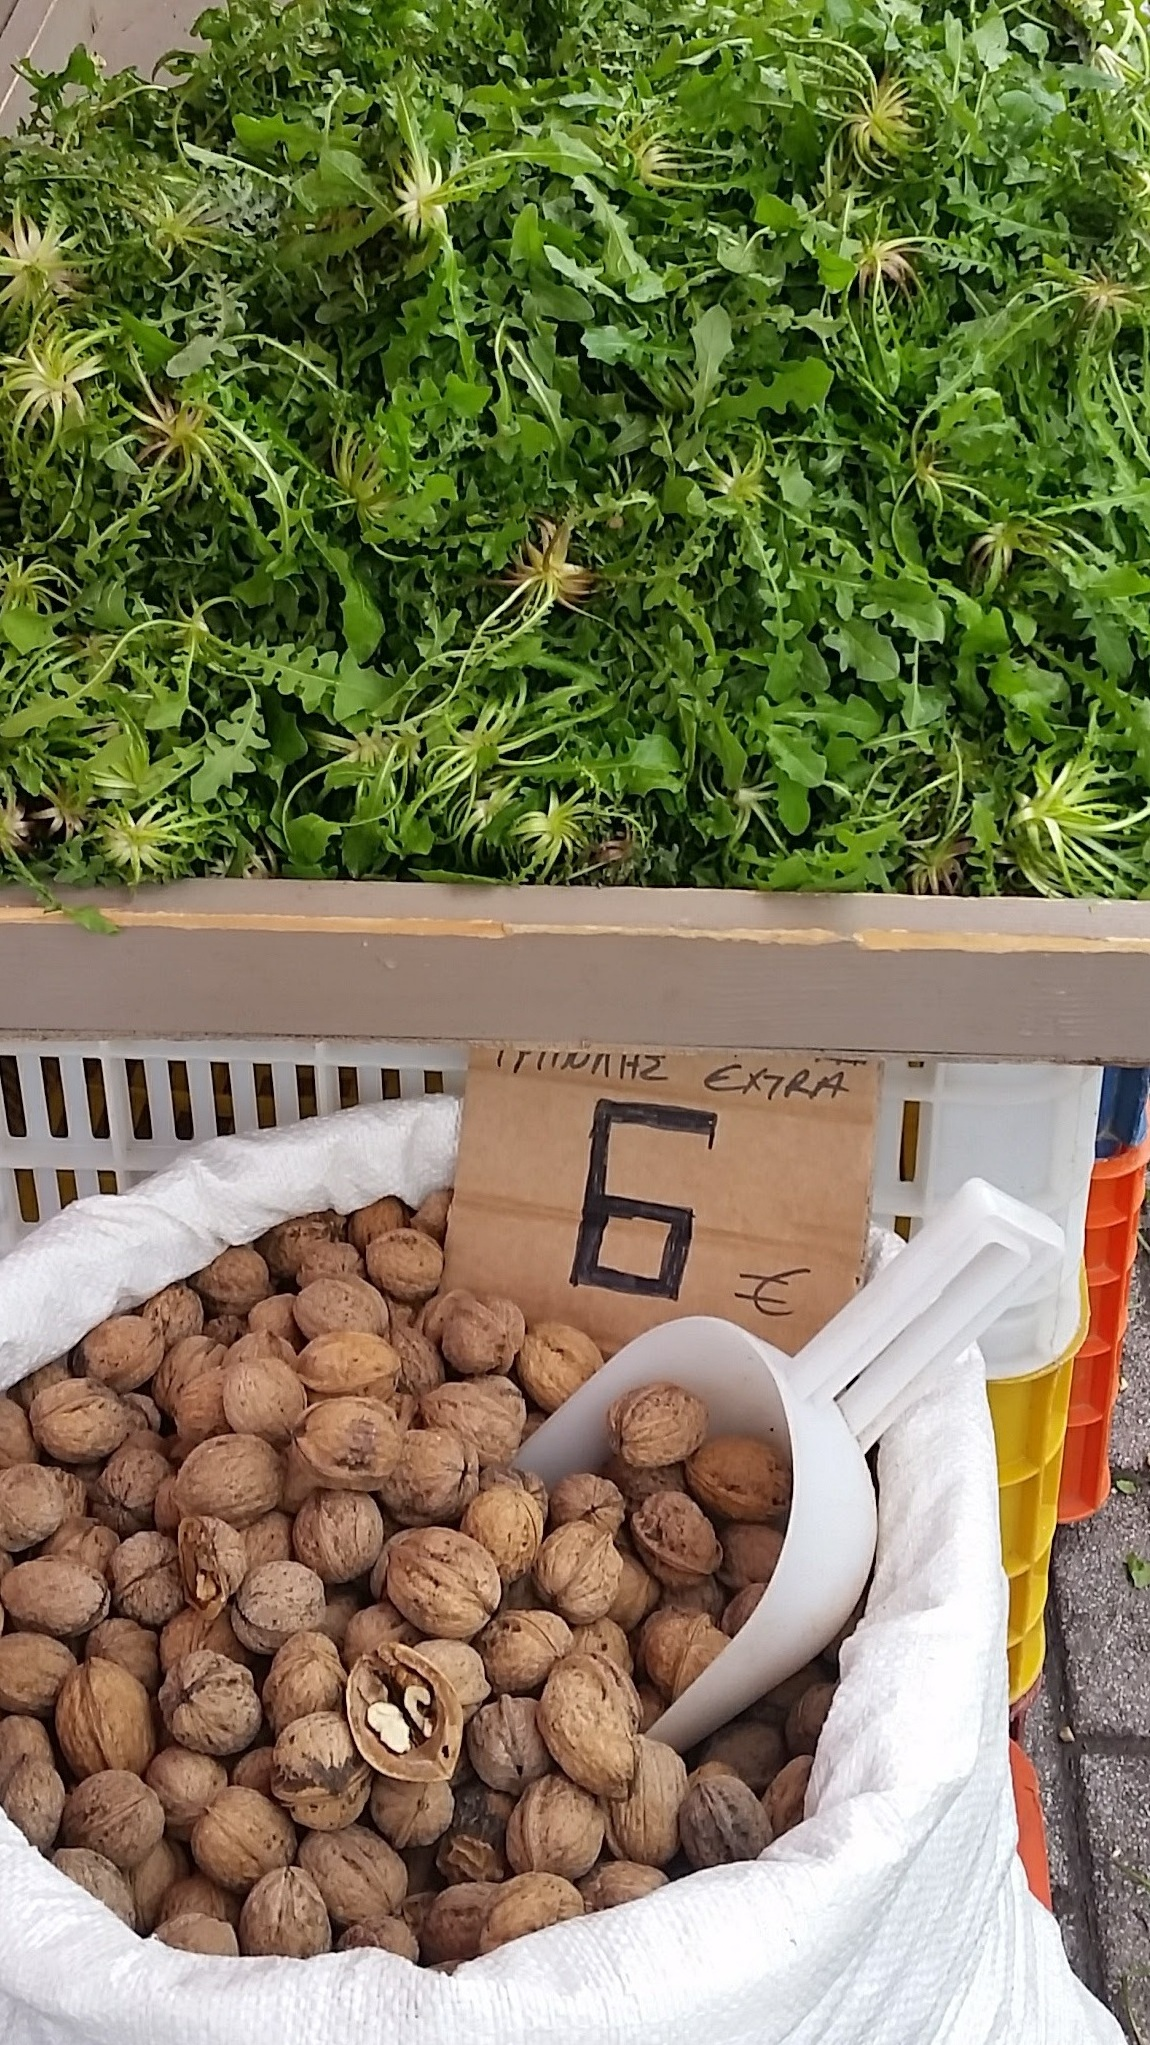 Wild foraged greens and local walnuts sold by the road in Greece